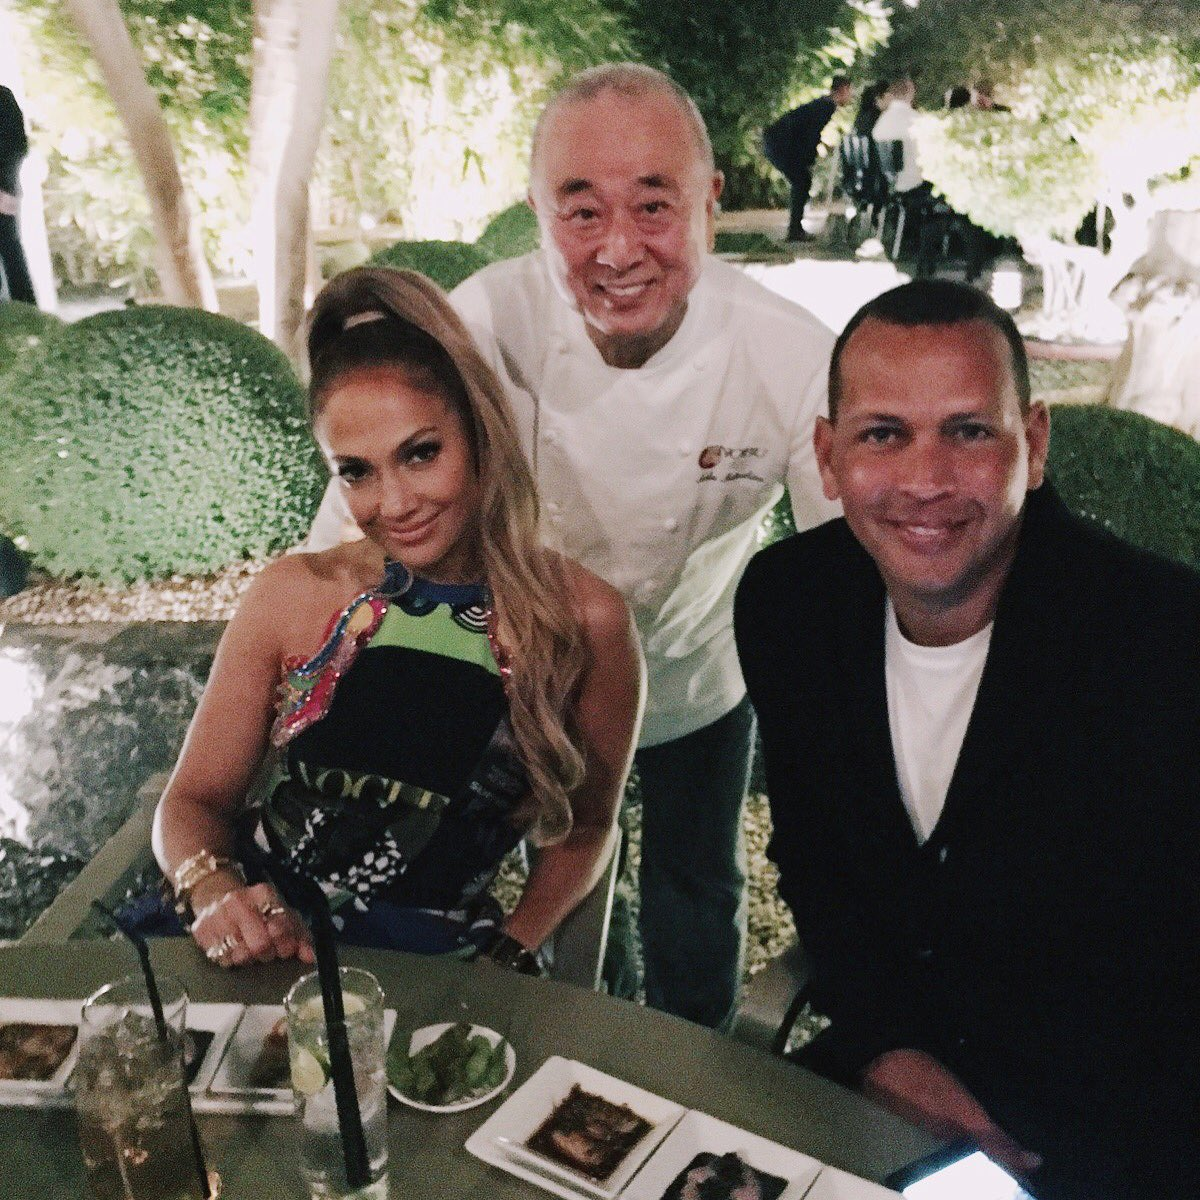 RT @AROD: With the great Chef Nobu Matsuhisa in Dubai! https://t.co/x1Z5nTsY6D